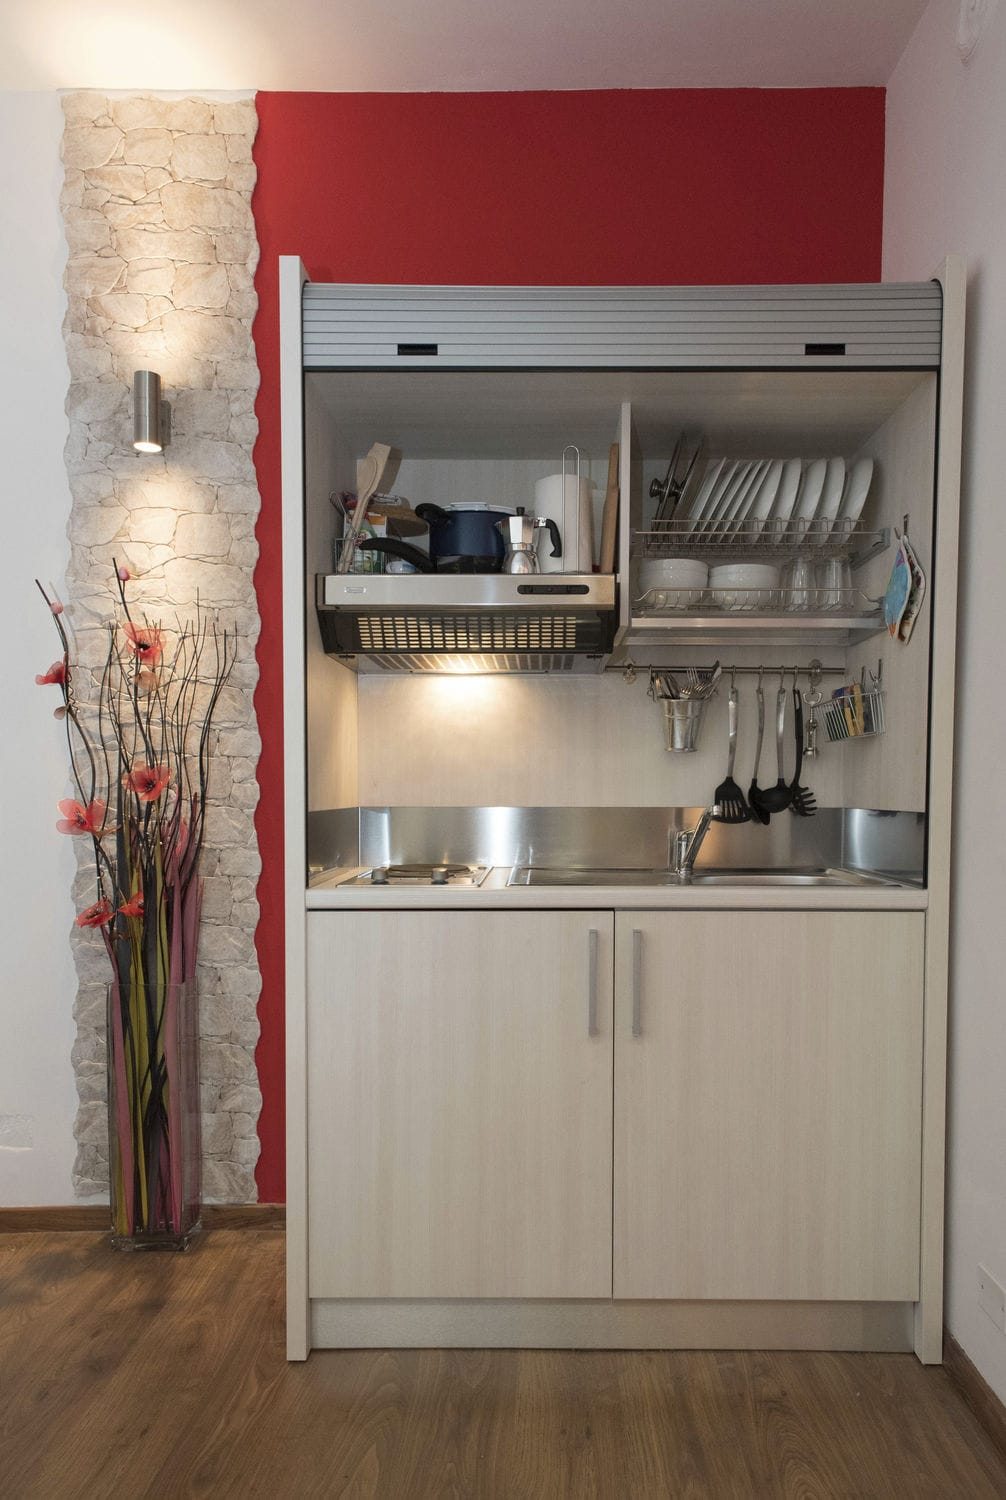 kitchen compact where to buy cabinet doors wooden commercial for offices hotel rooms